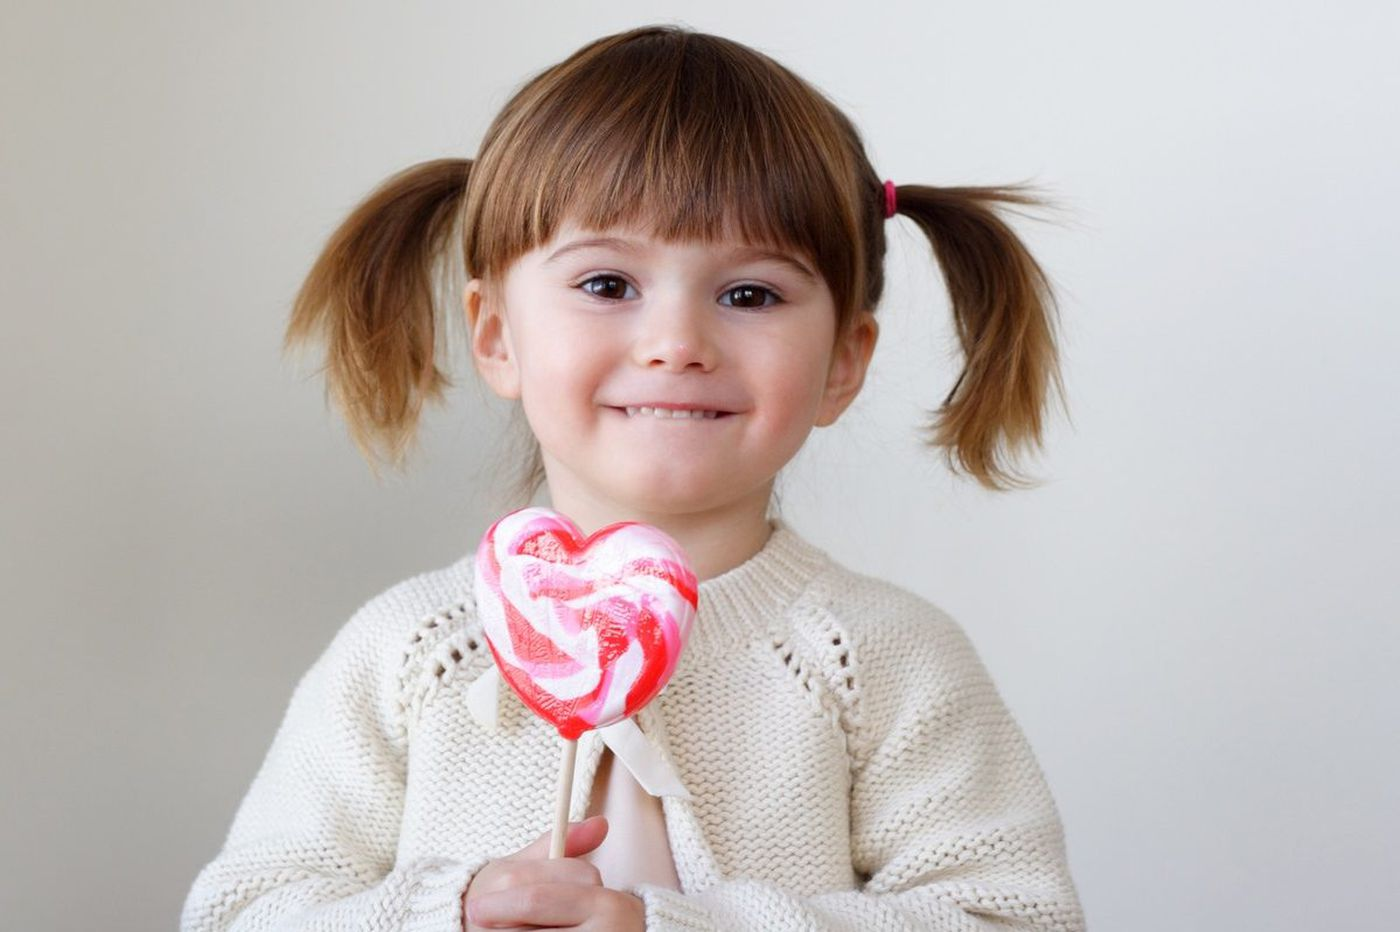 3 tips from a dentist to keep Valentine's Day sweet for kids' teeth